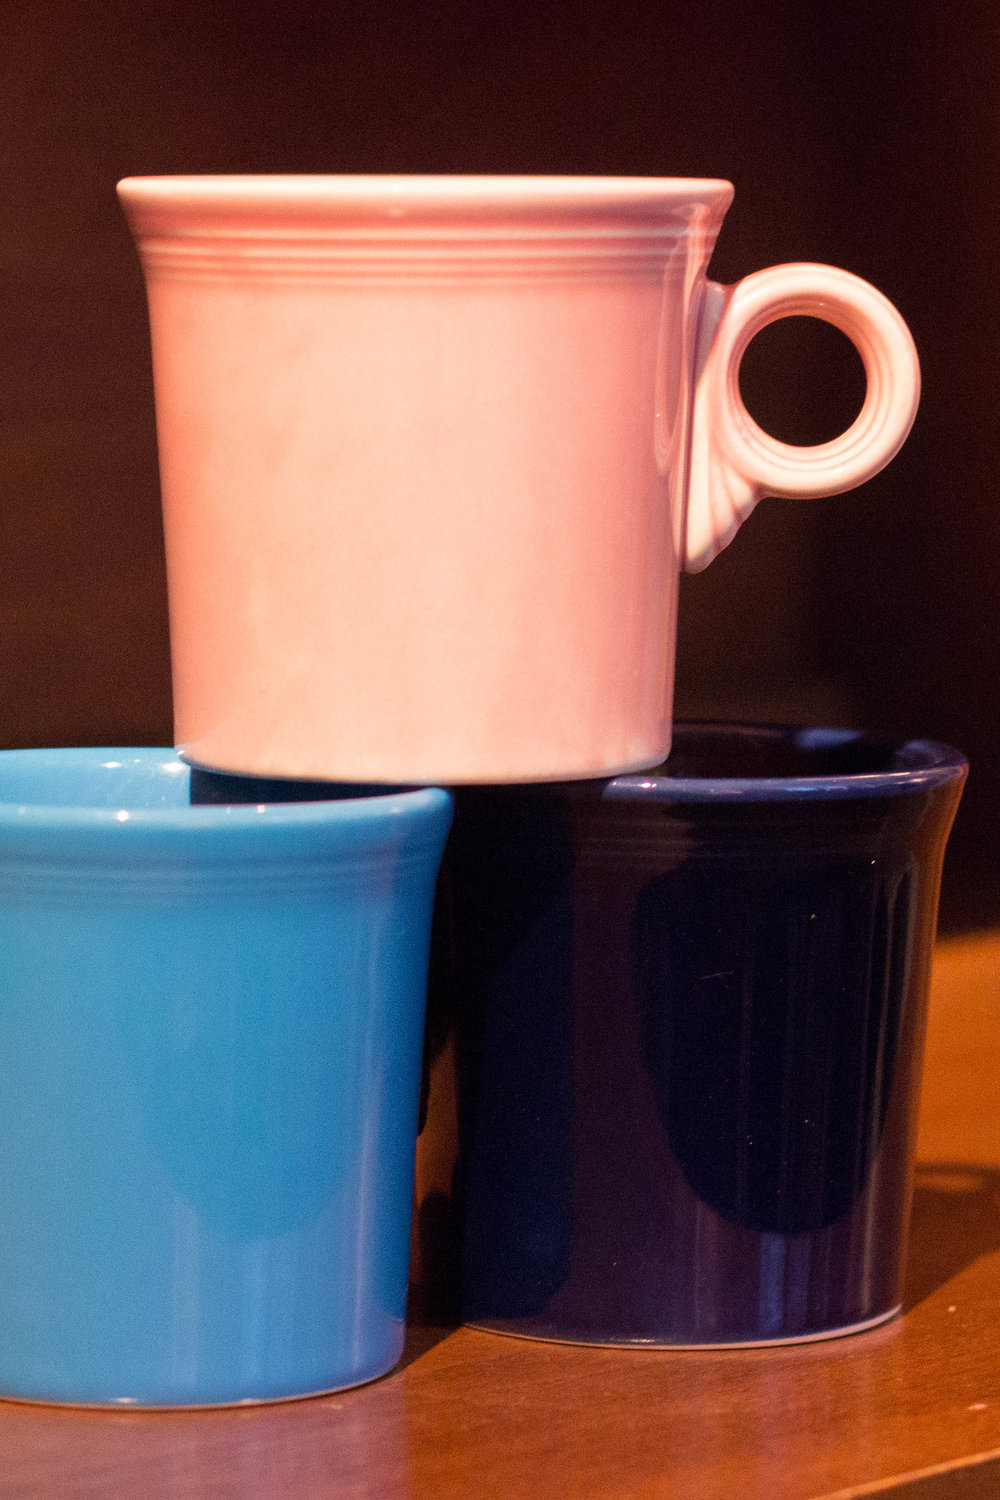 Fiesta Mugs | Refindings York, PA | Architectural Salvage & Antiques